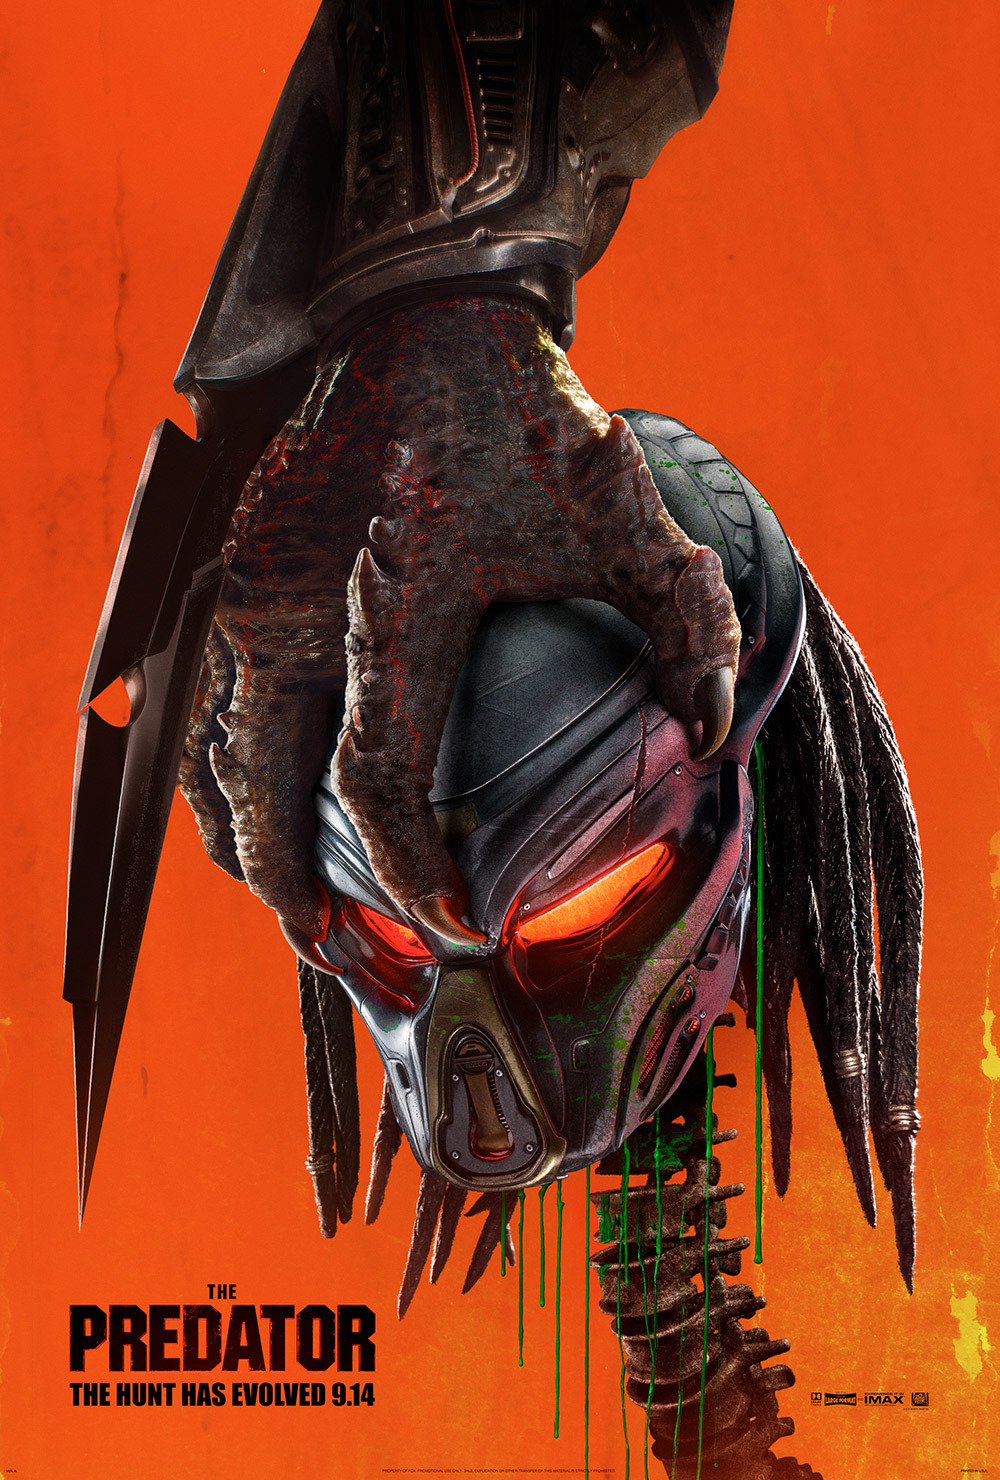 The Predator 2018 Imdb